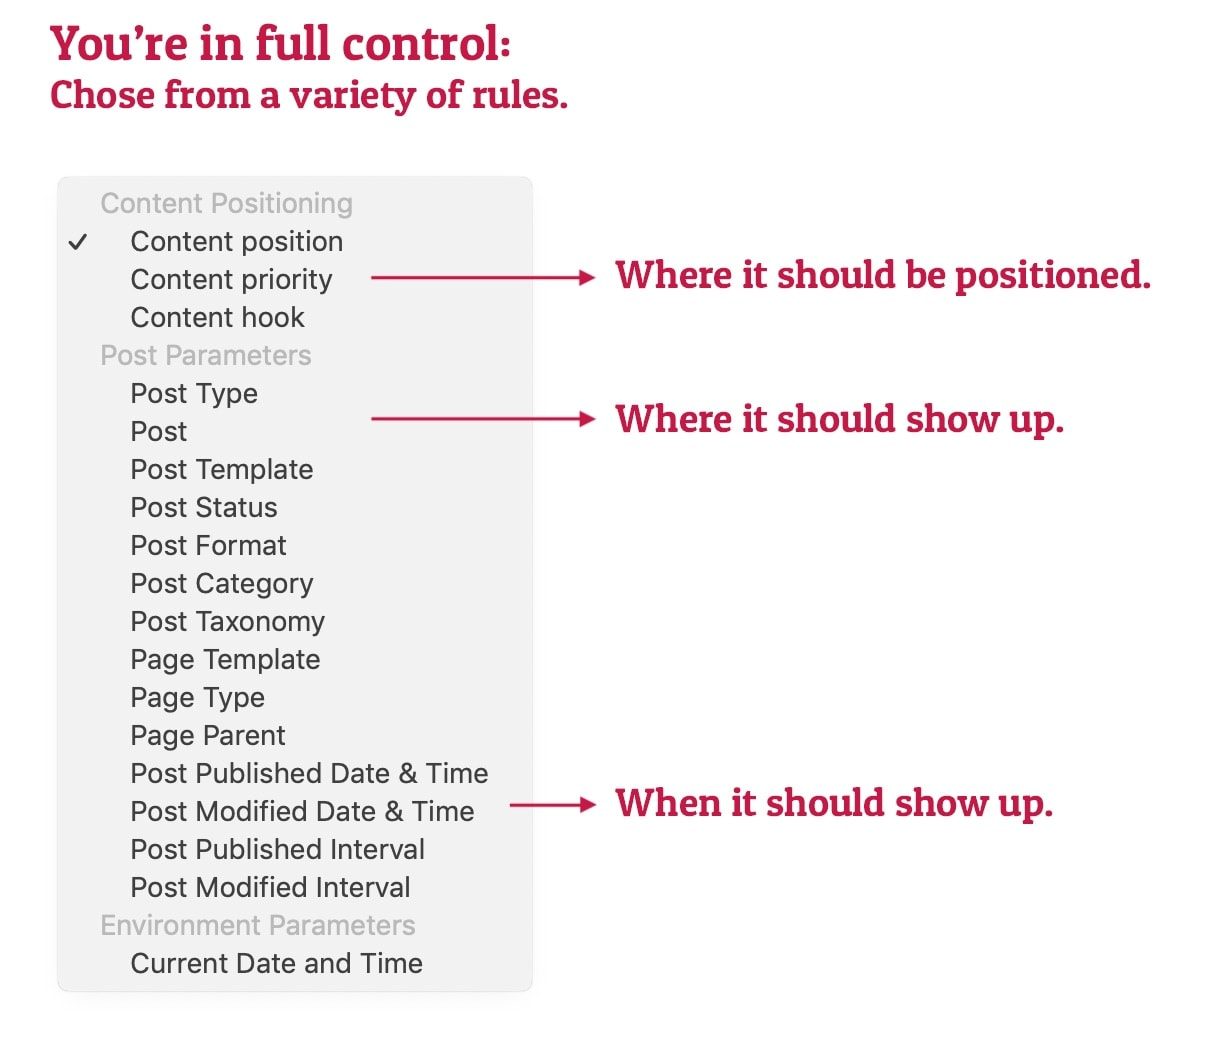 You are in full control. Choose from a variety of rules